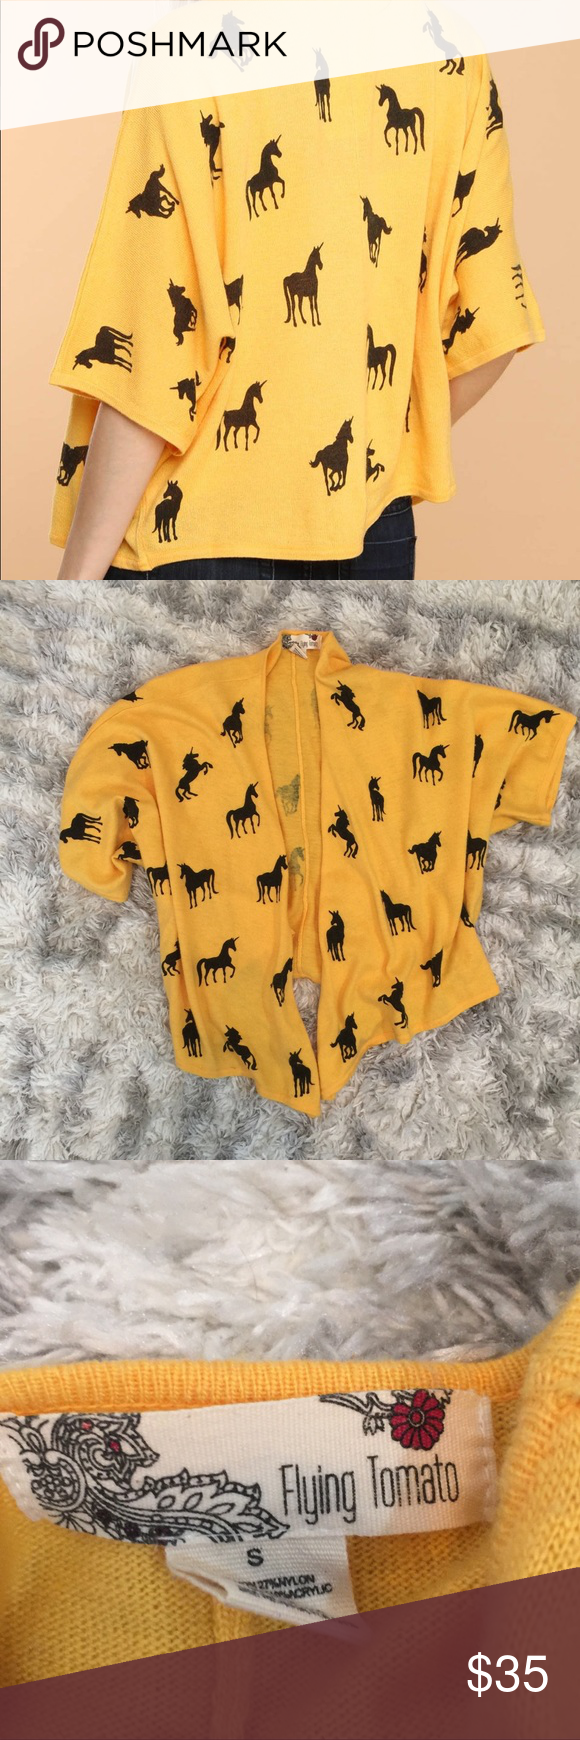 Anthropologie Unicorn Mustard Yellow Shawl Gorgeous Mustard yellow Anthropologie Flying Tomato Shawl/sweater. Gently used. Excellent condition! Flying Tomato Sweaters Shrugs & Ponchos #mustardyellow